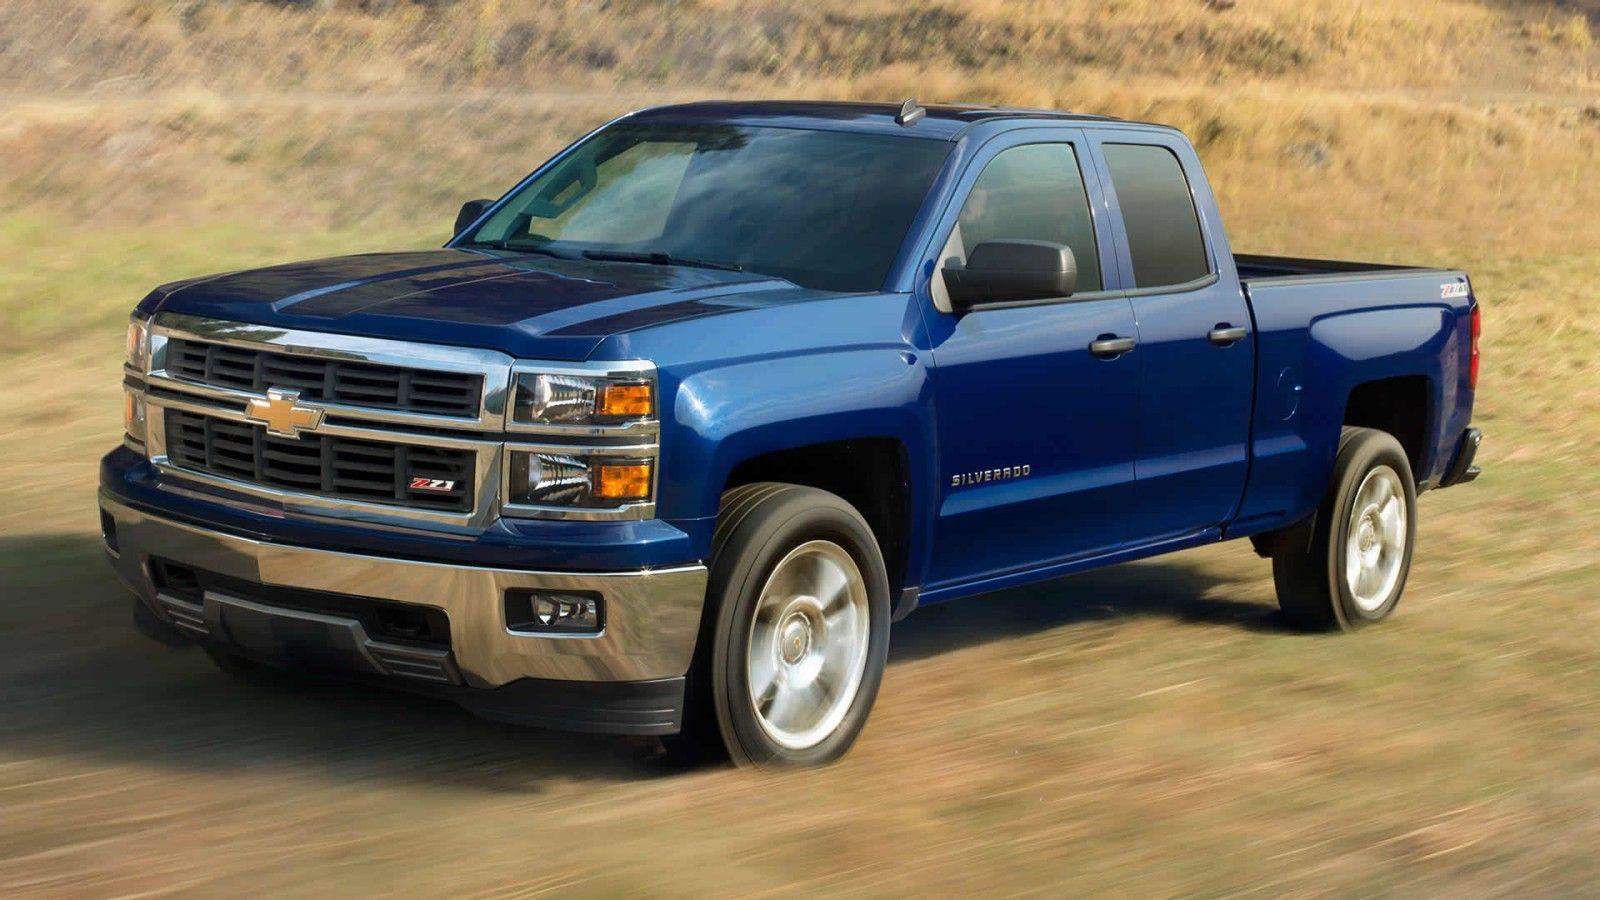 top rated trucks 2013 site:pinterest.com - 1000+ images about Silverado on Pinterest Silverado 1500, Limo ...